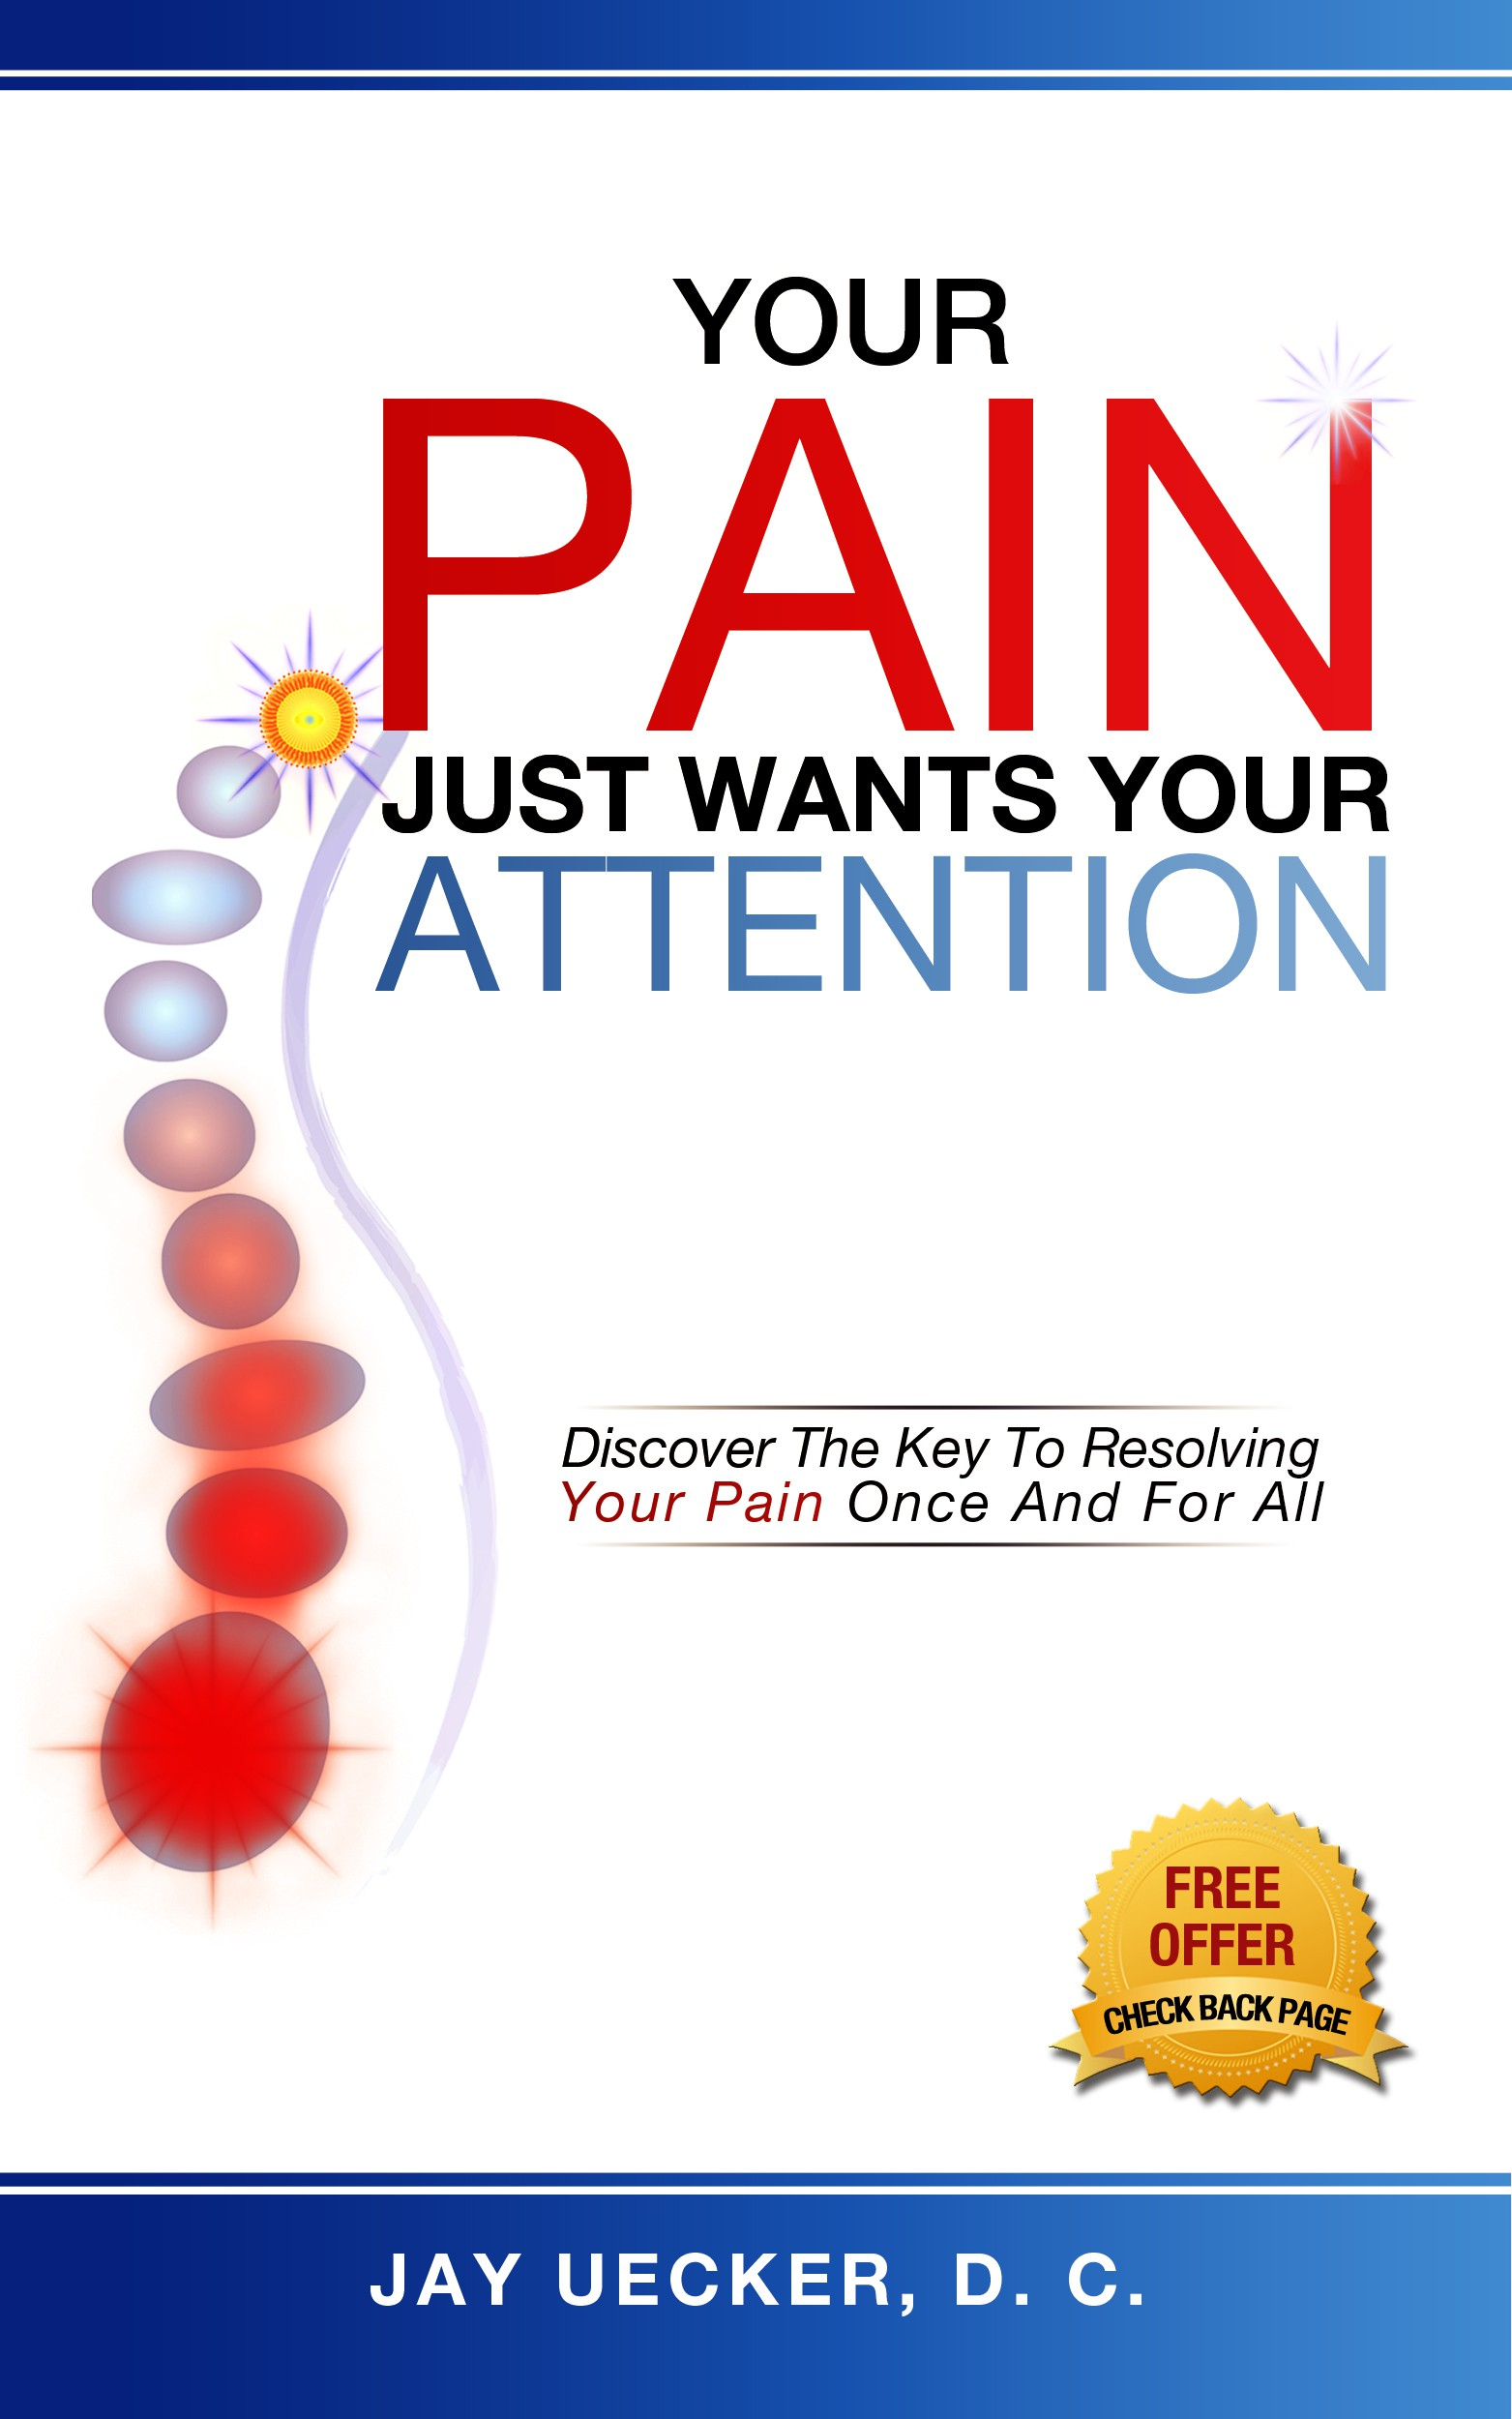 Book cover: pain is bound up, intelligent energy that, once catalyzed, becomes the fuel for our growth and healing.